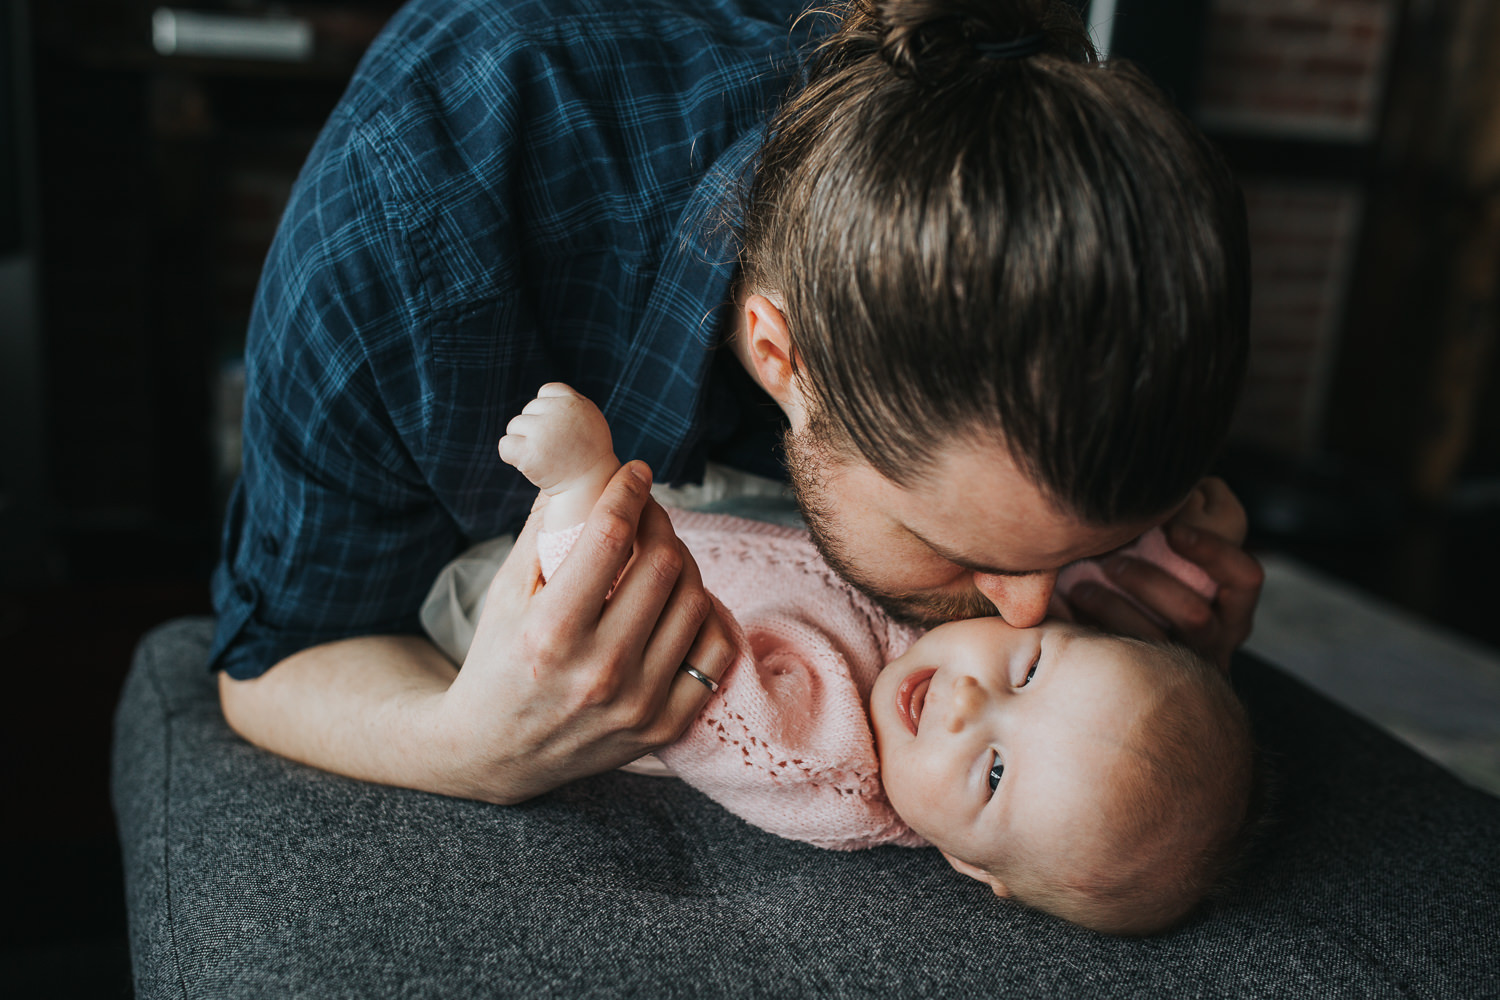 5 month old baby girl laughing, lying on couch as dad kisses her - Stouffville lifestyle photography